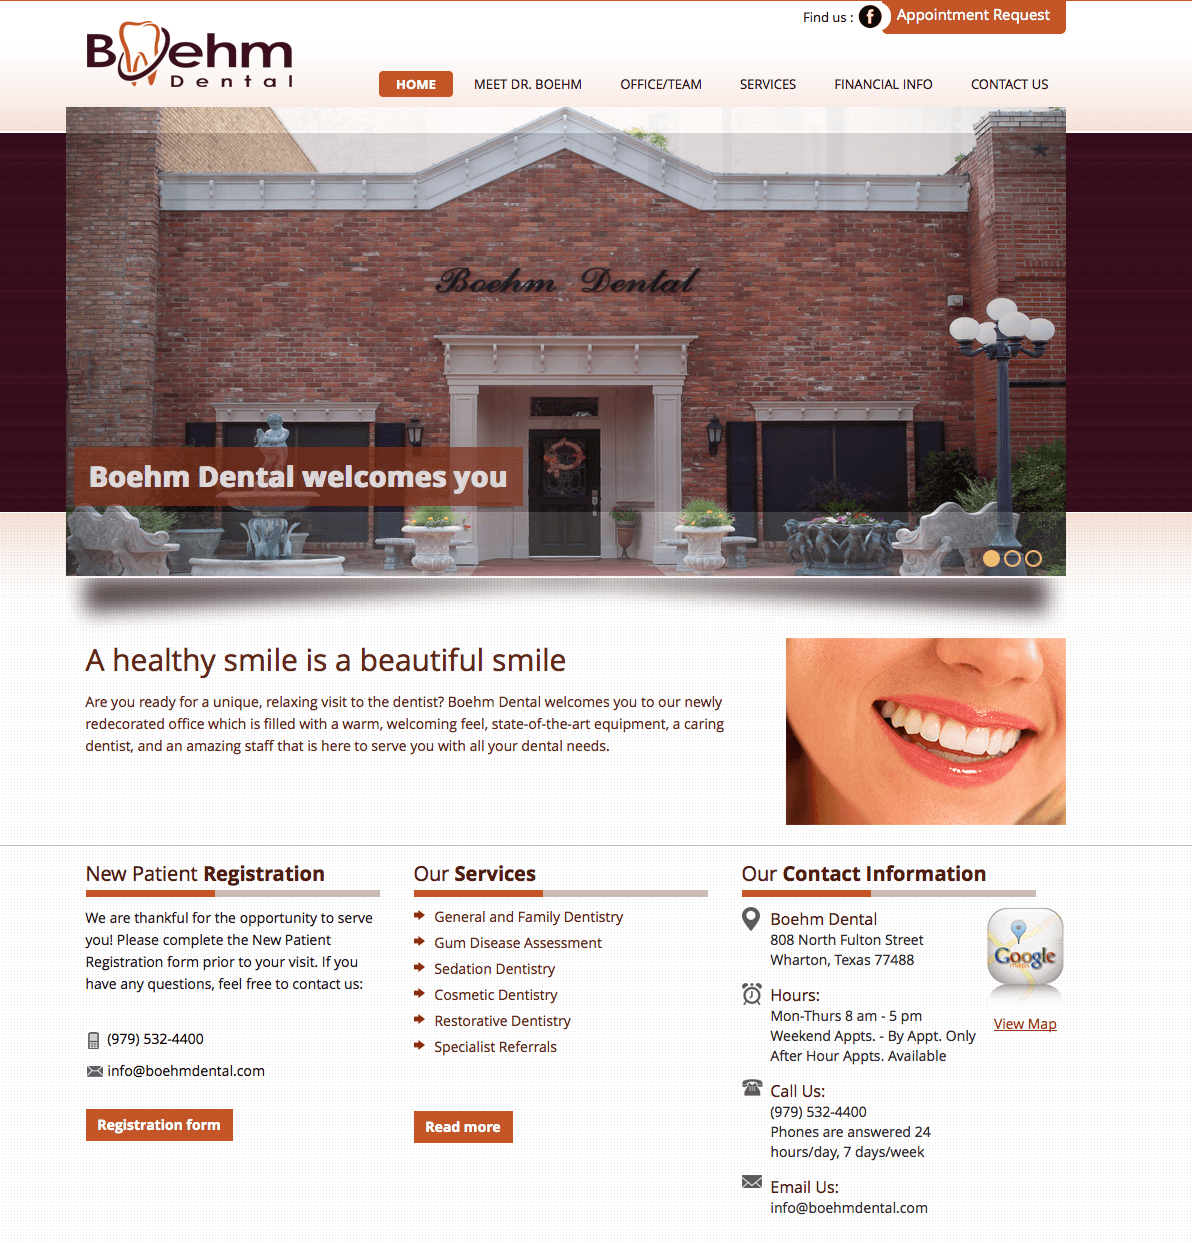 Boehm Dental website